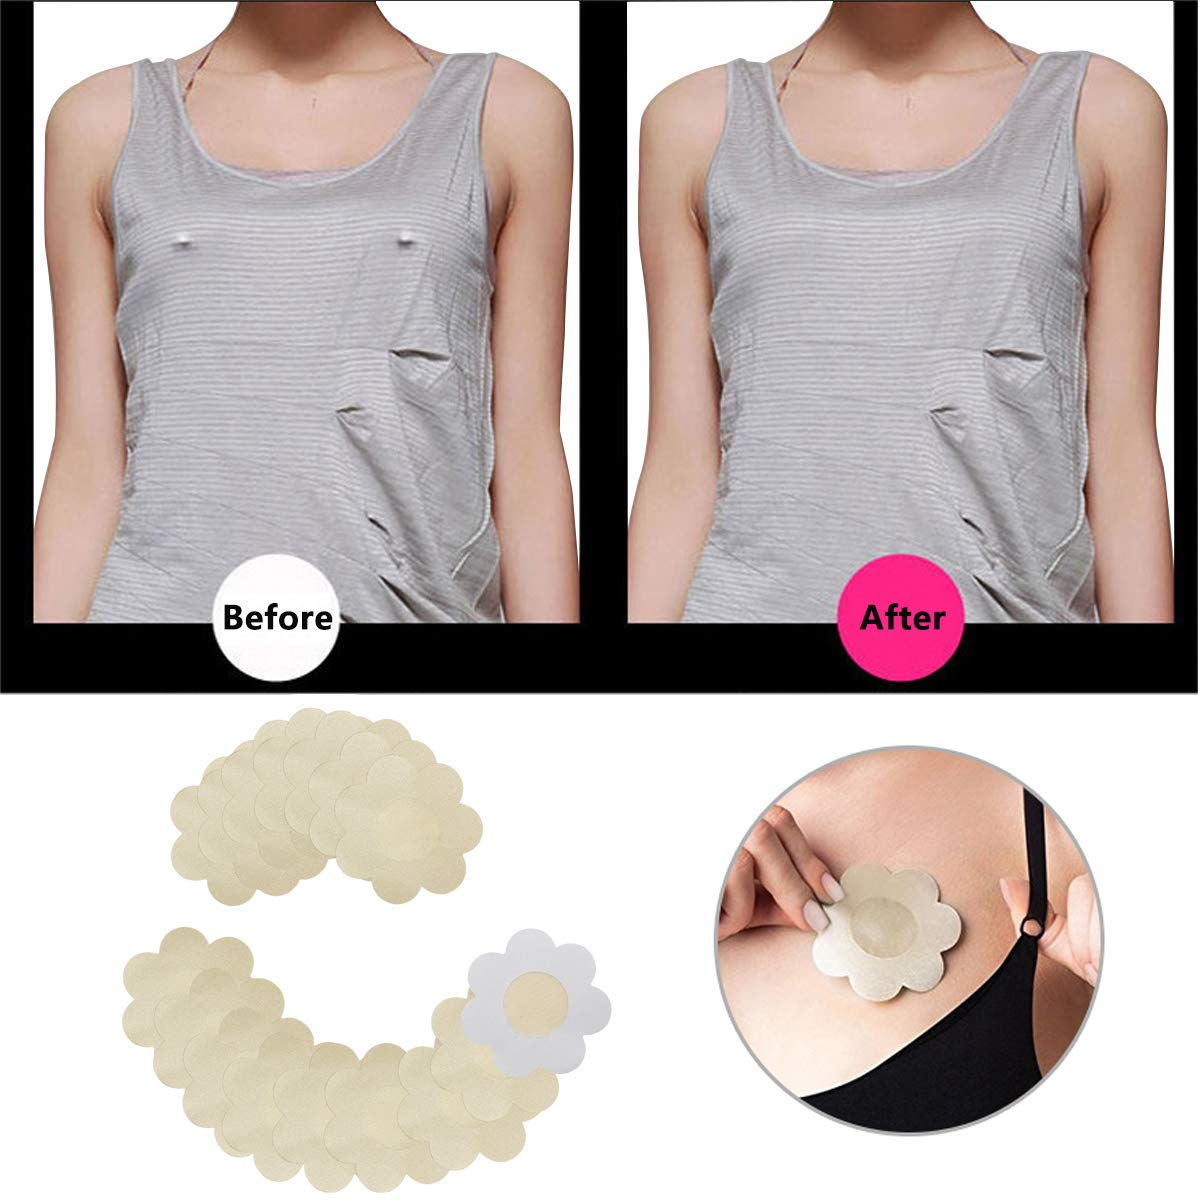 Nipple Covers Disposable 10 Or 20 Pcs Adhesive Invisible Satin Breast Pasties Multi Design